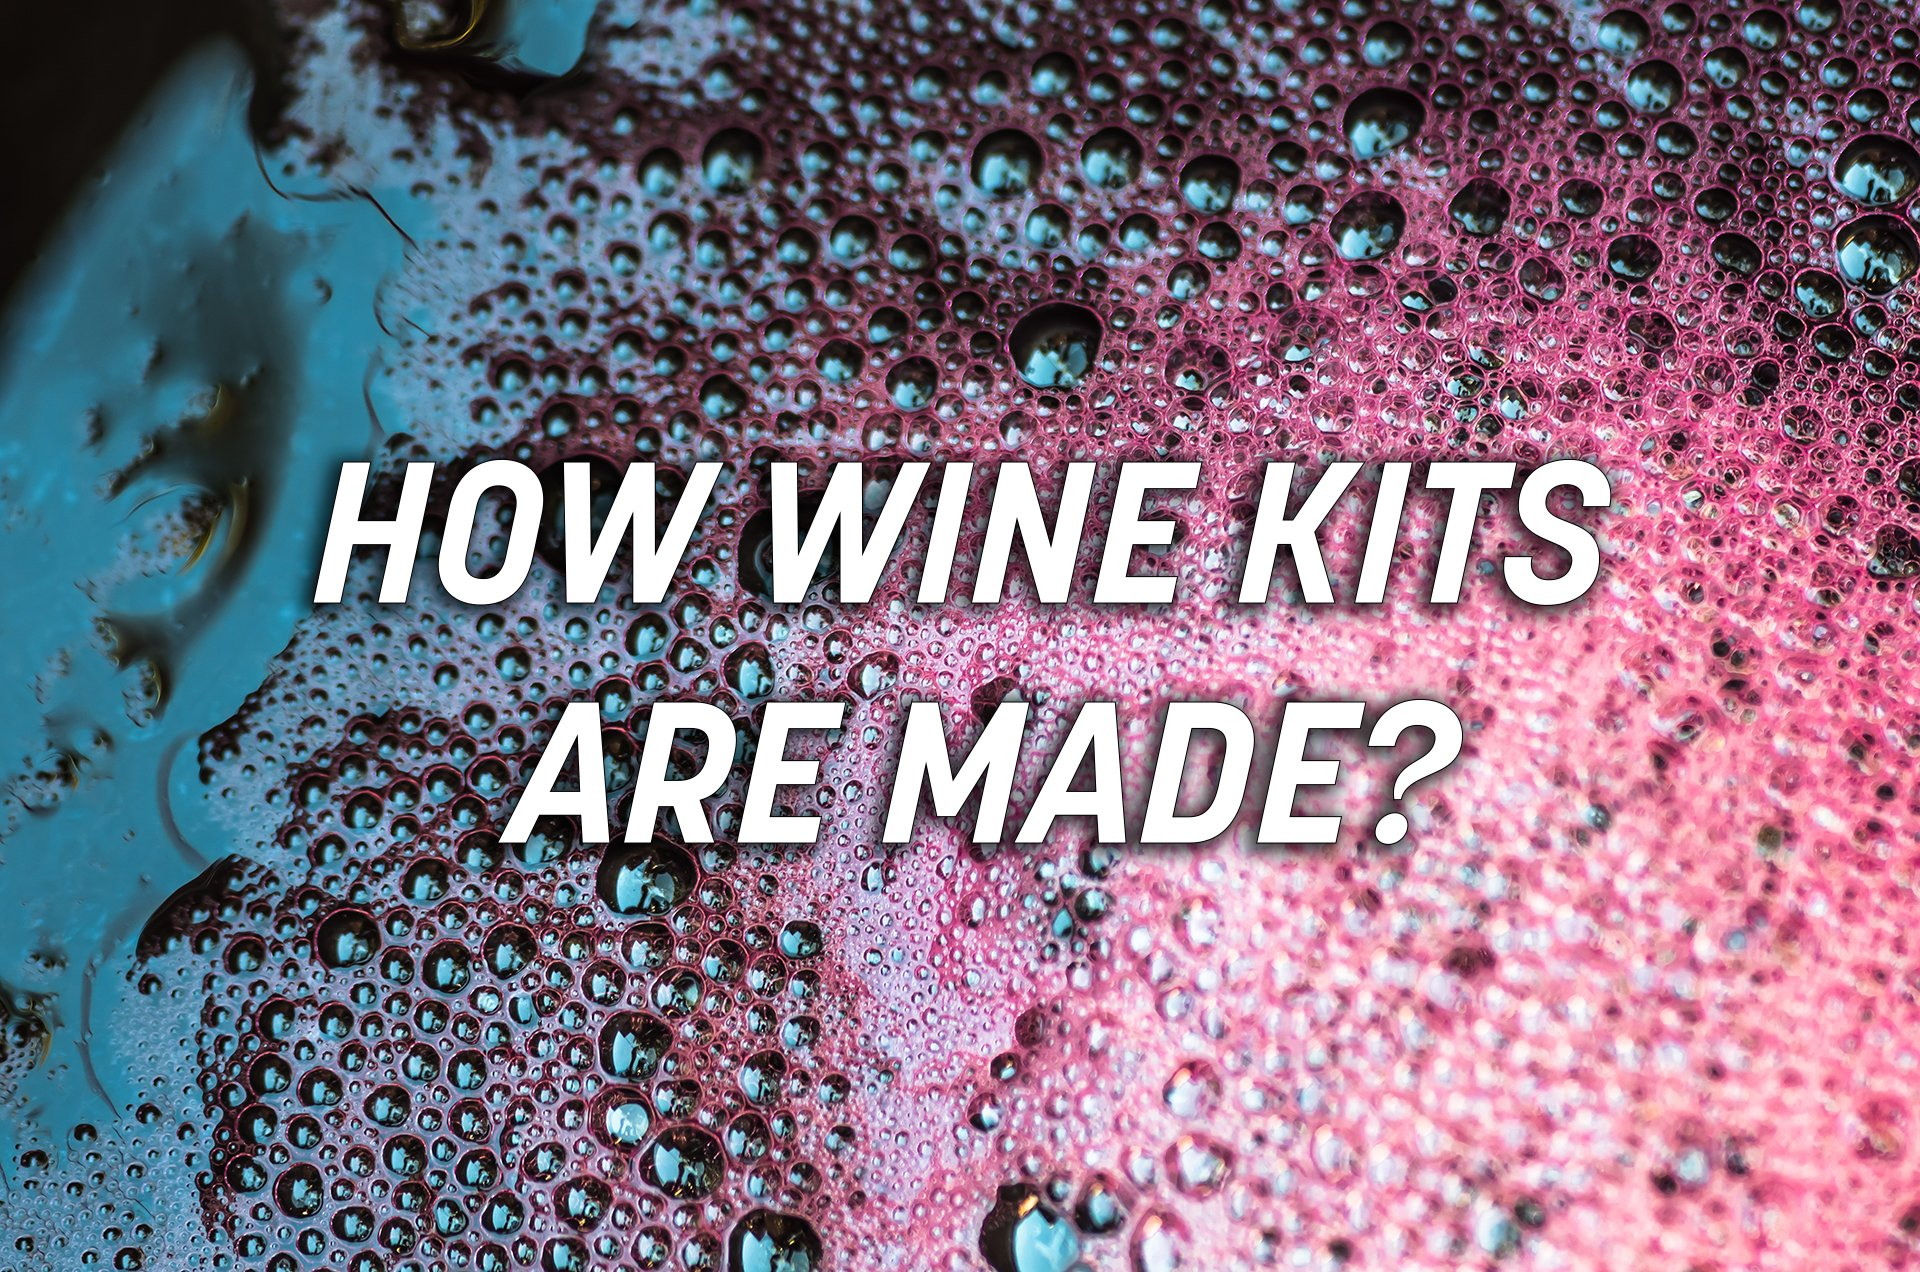 How Wine Kits Are Made?